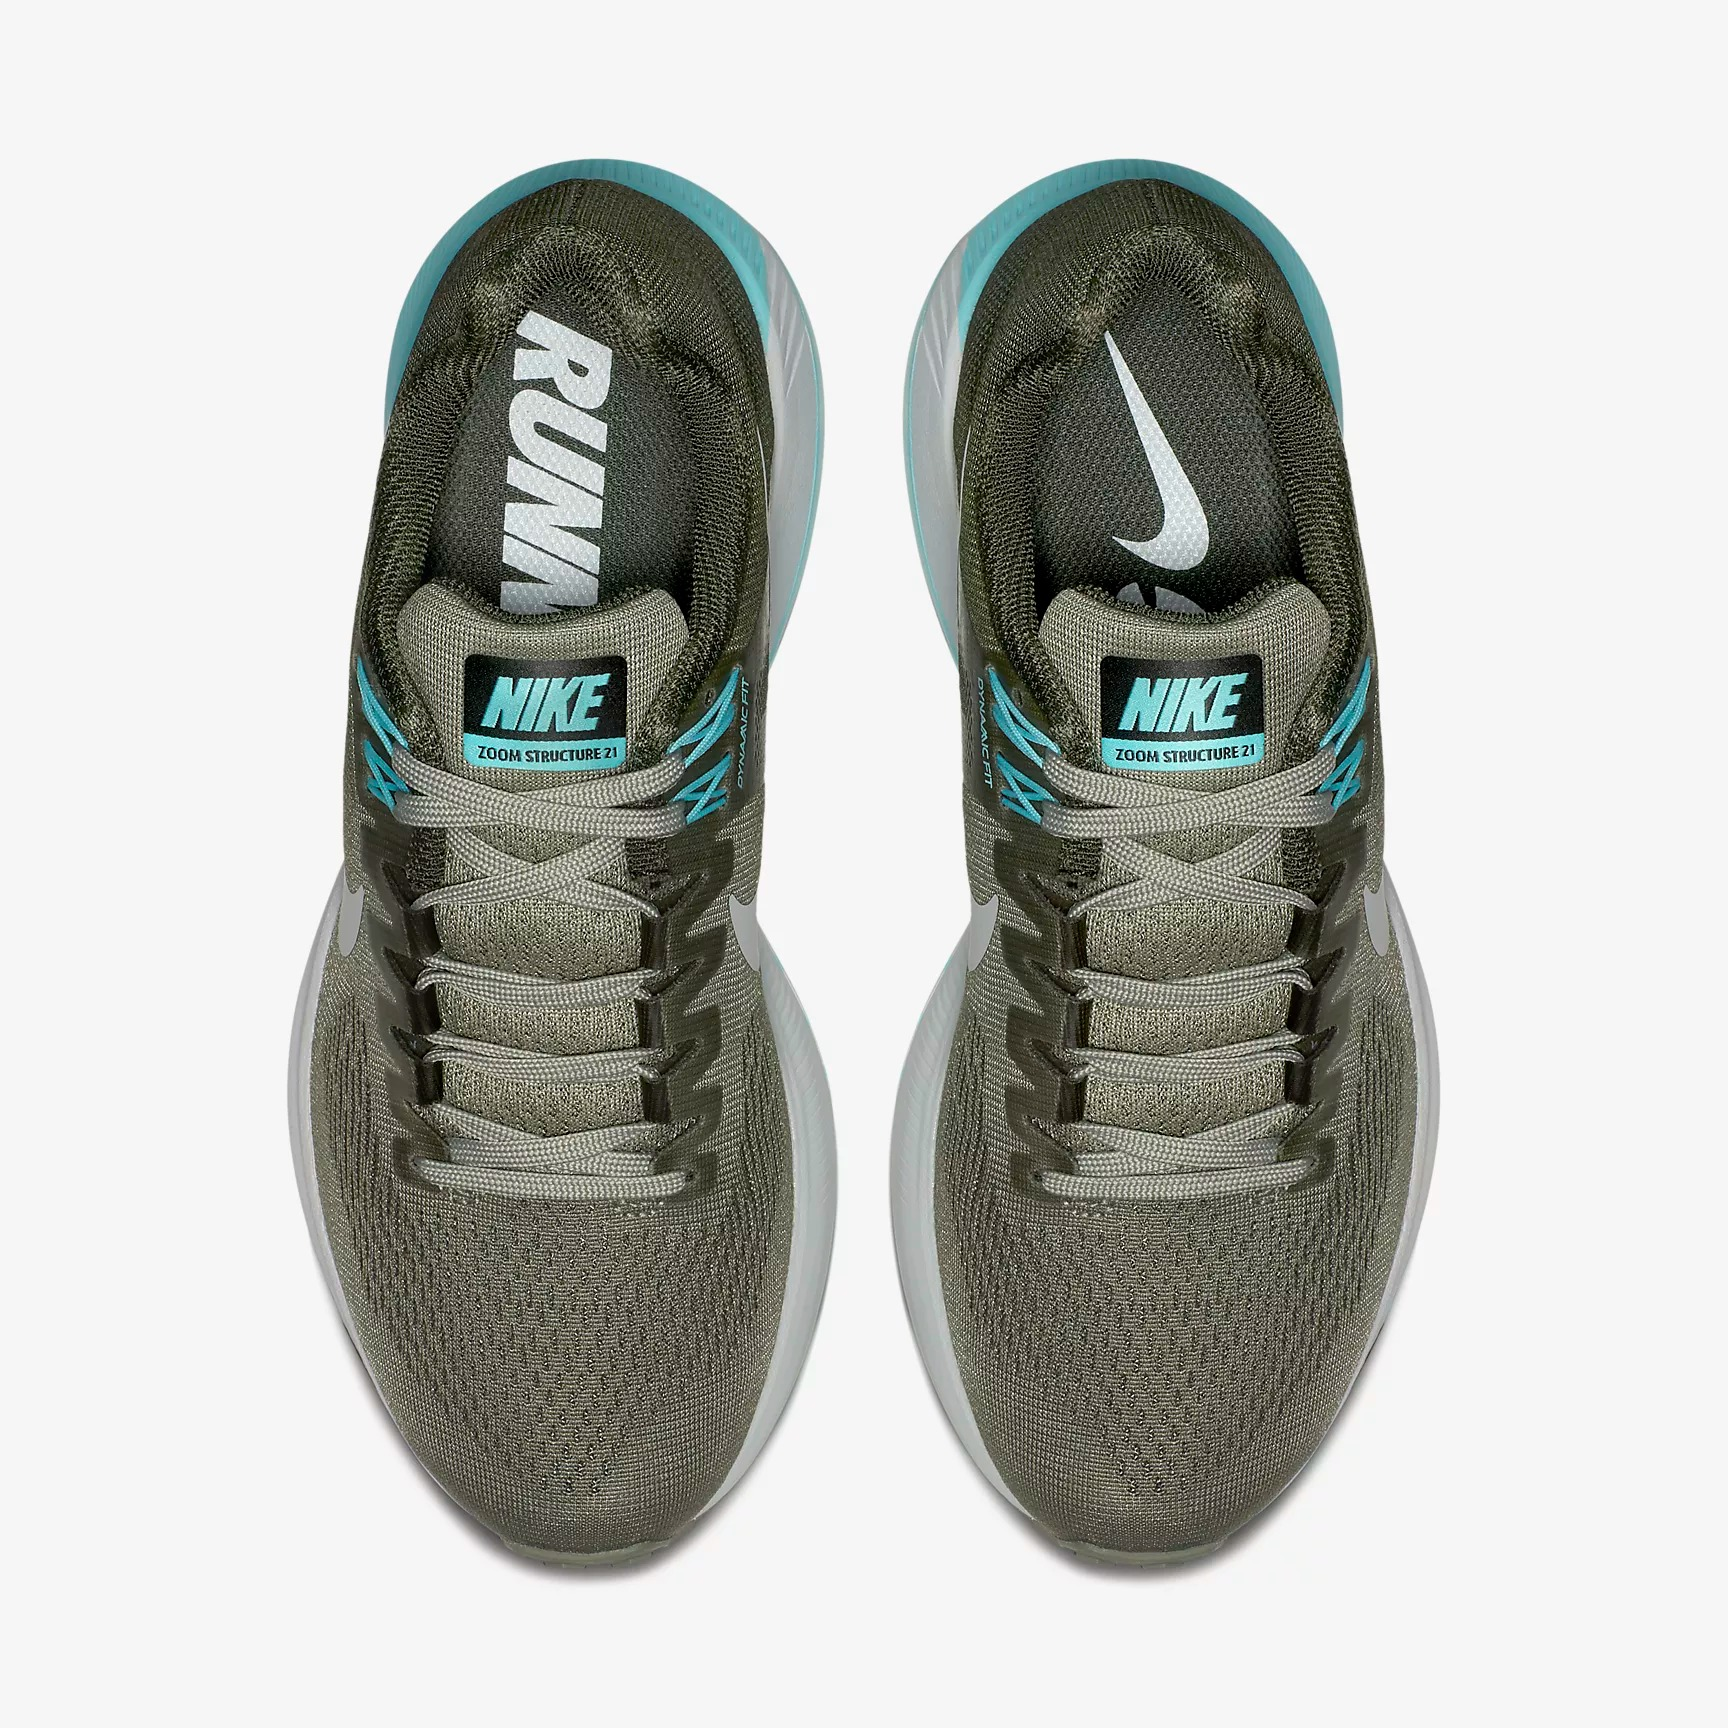 4709ac7ad629 Nike Wmns Air Zoom Structure 21 Running Shoes - SPORT SHOES RUNNING ...